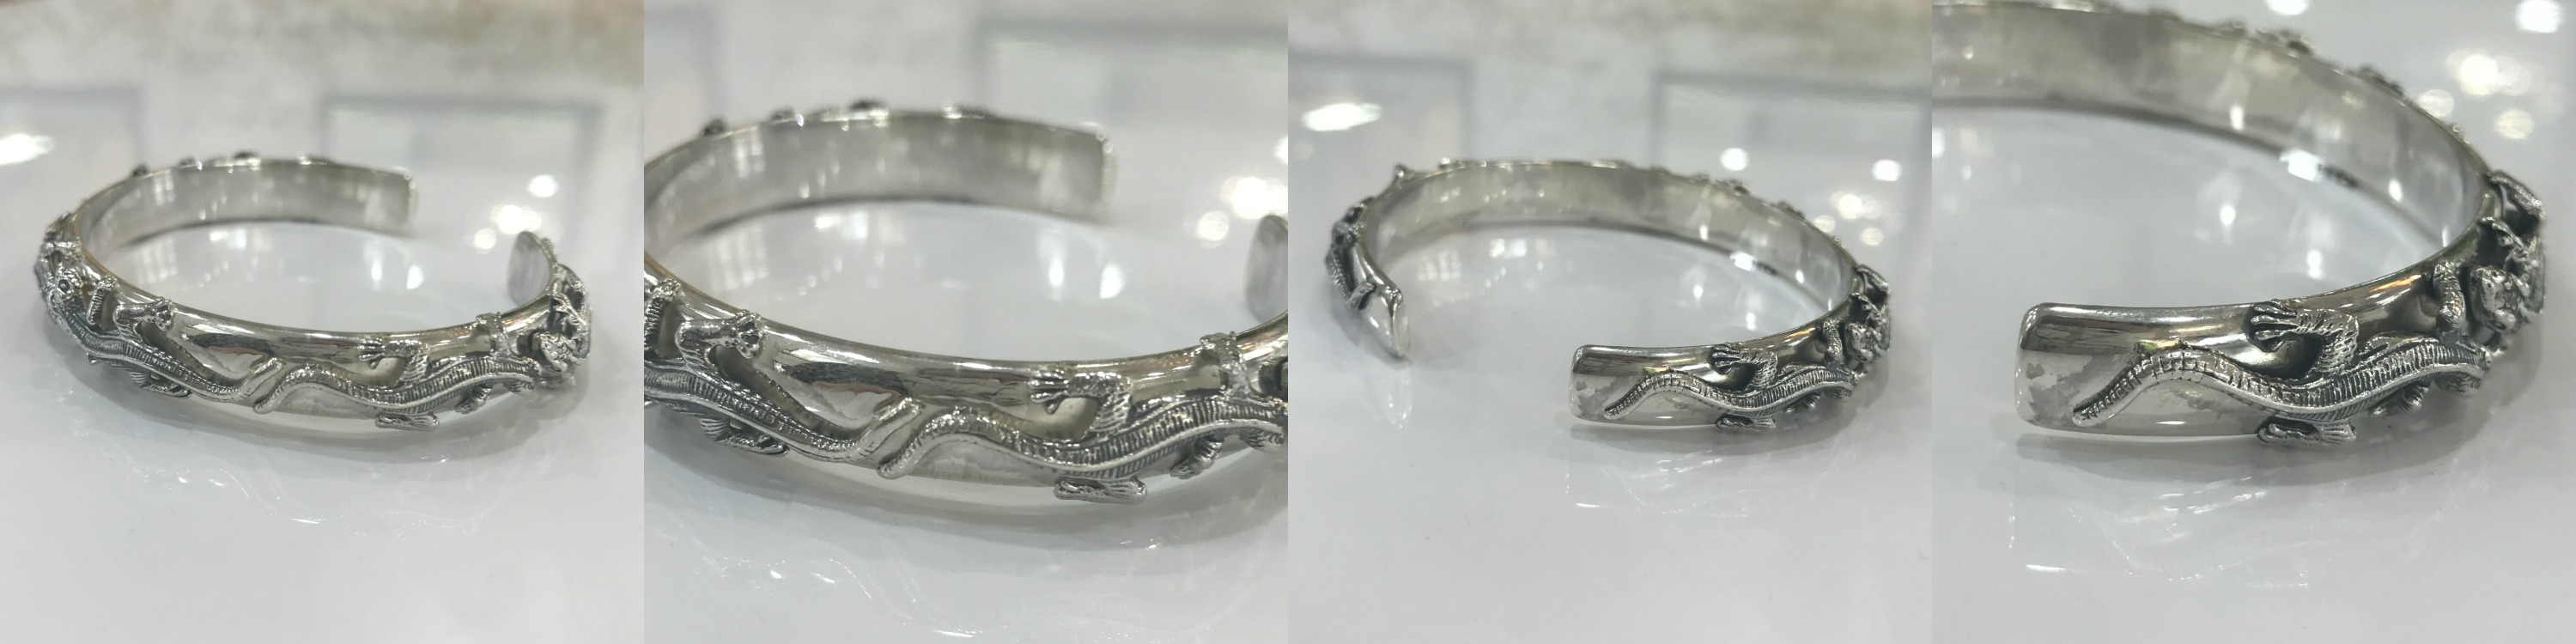 rings index silver lizard ring newlogo band